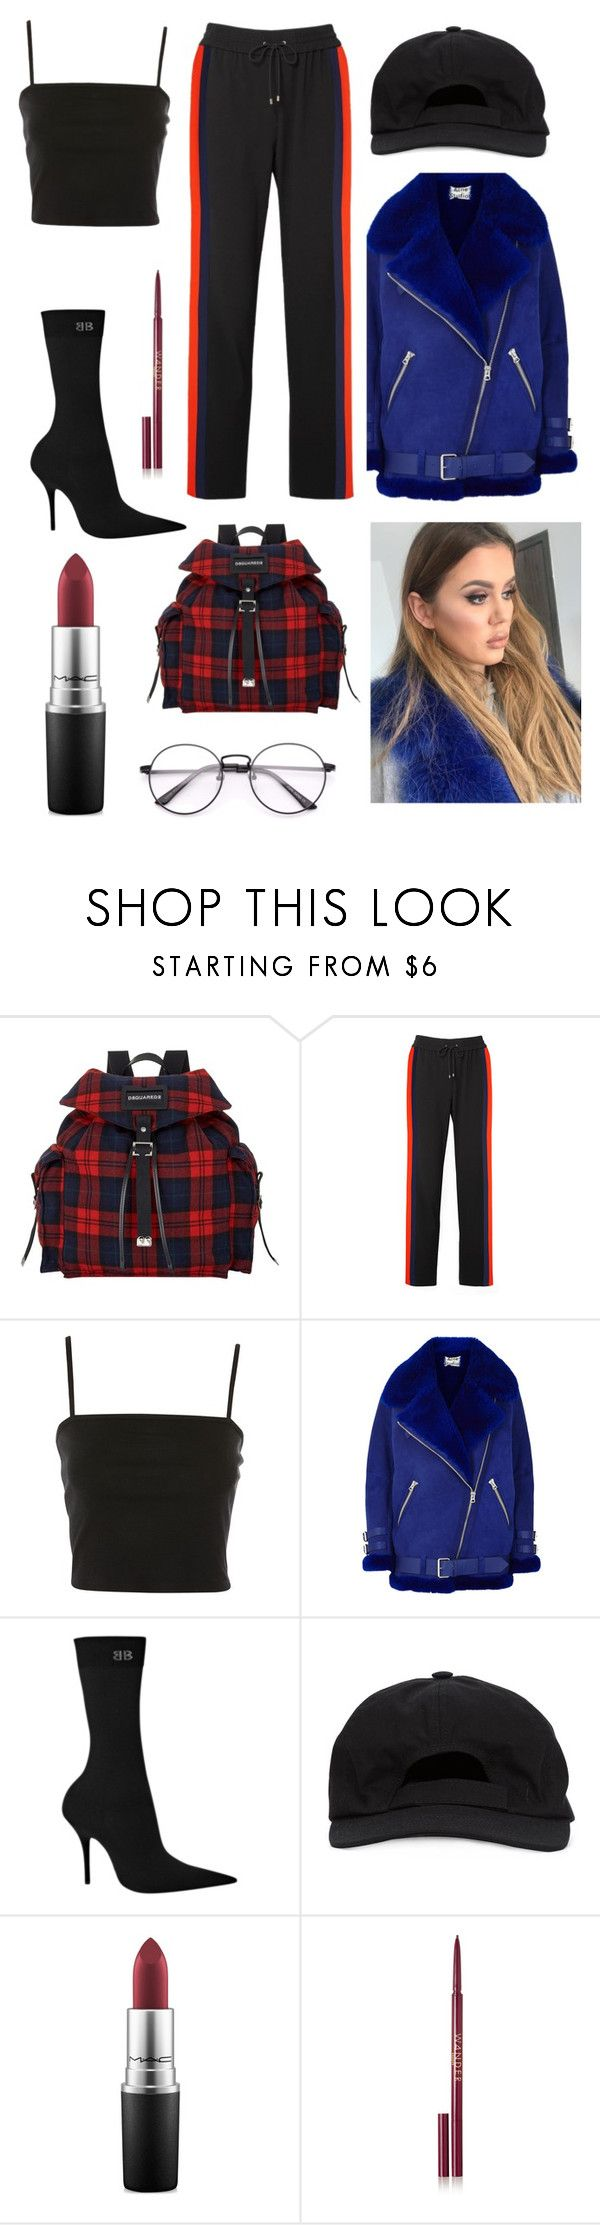 """Untitled #1503"" by denisaalexandraa ❤ liked on Polyvore featuring Dsquared2, Kenzo, Topshop, Acne Studios, Balenciaga, MM6 Maison Margiela, MAC Cosmetics and Wander Beauty"